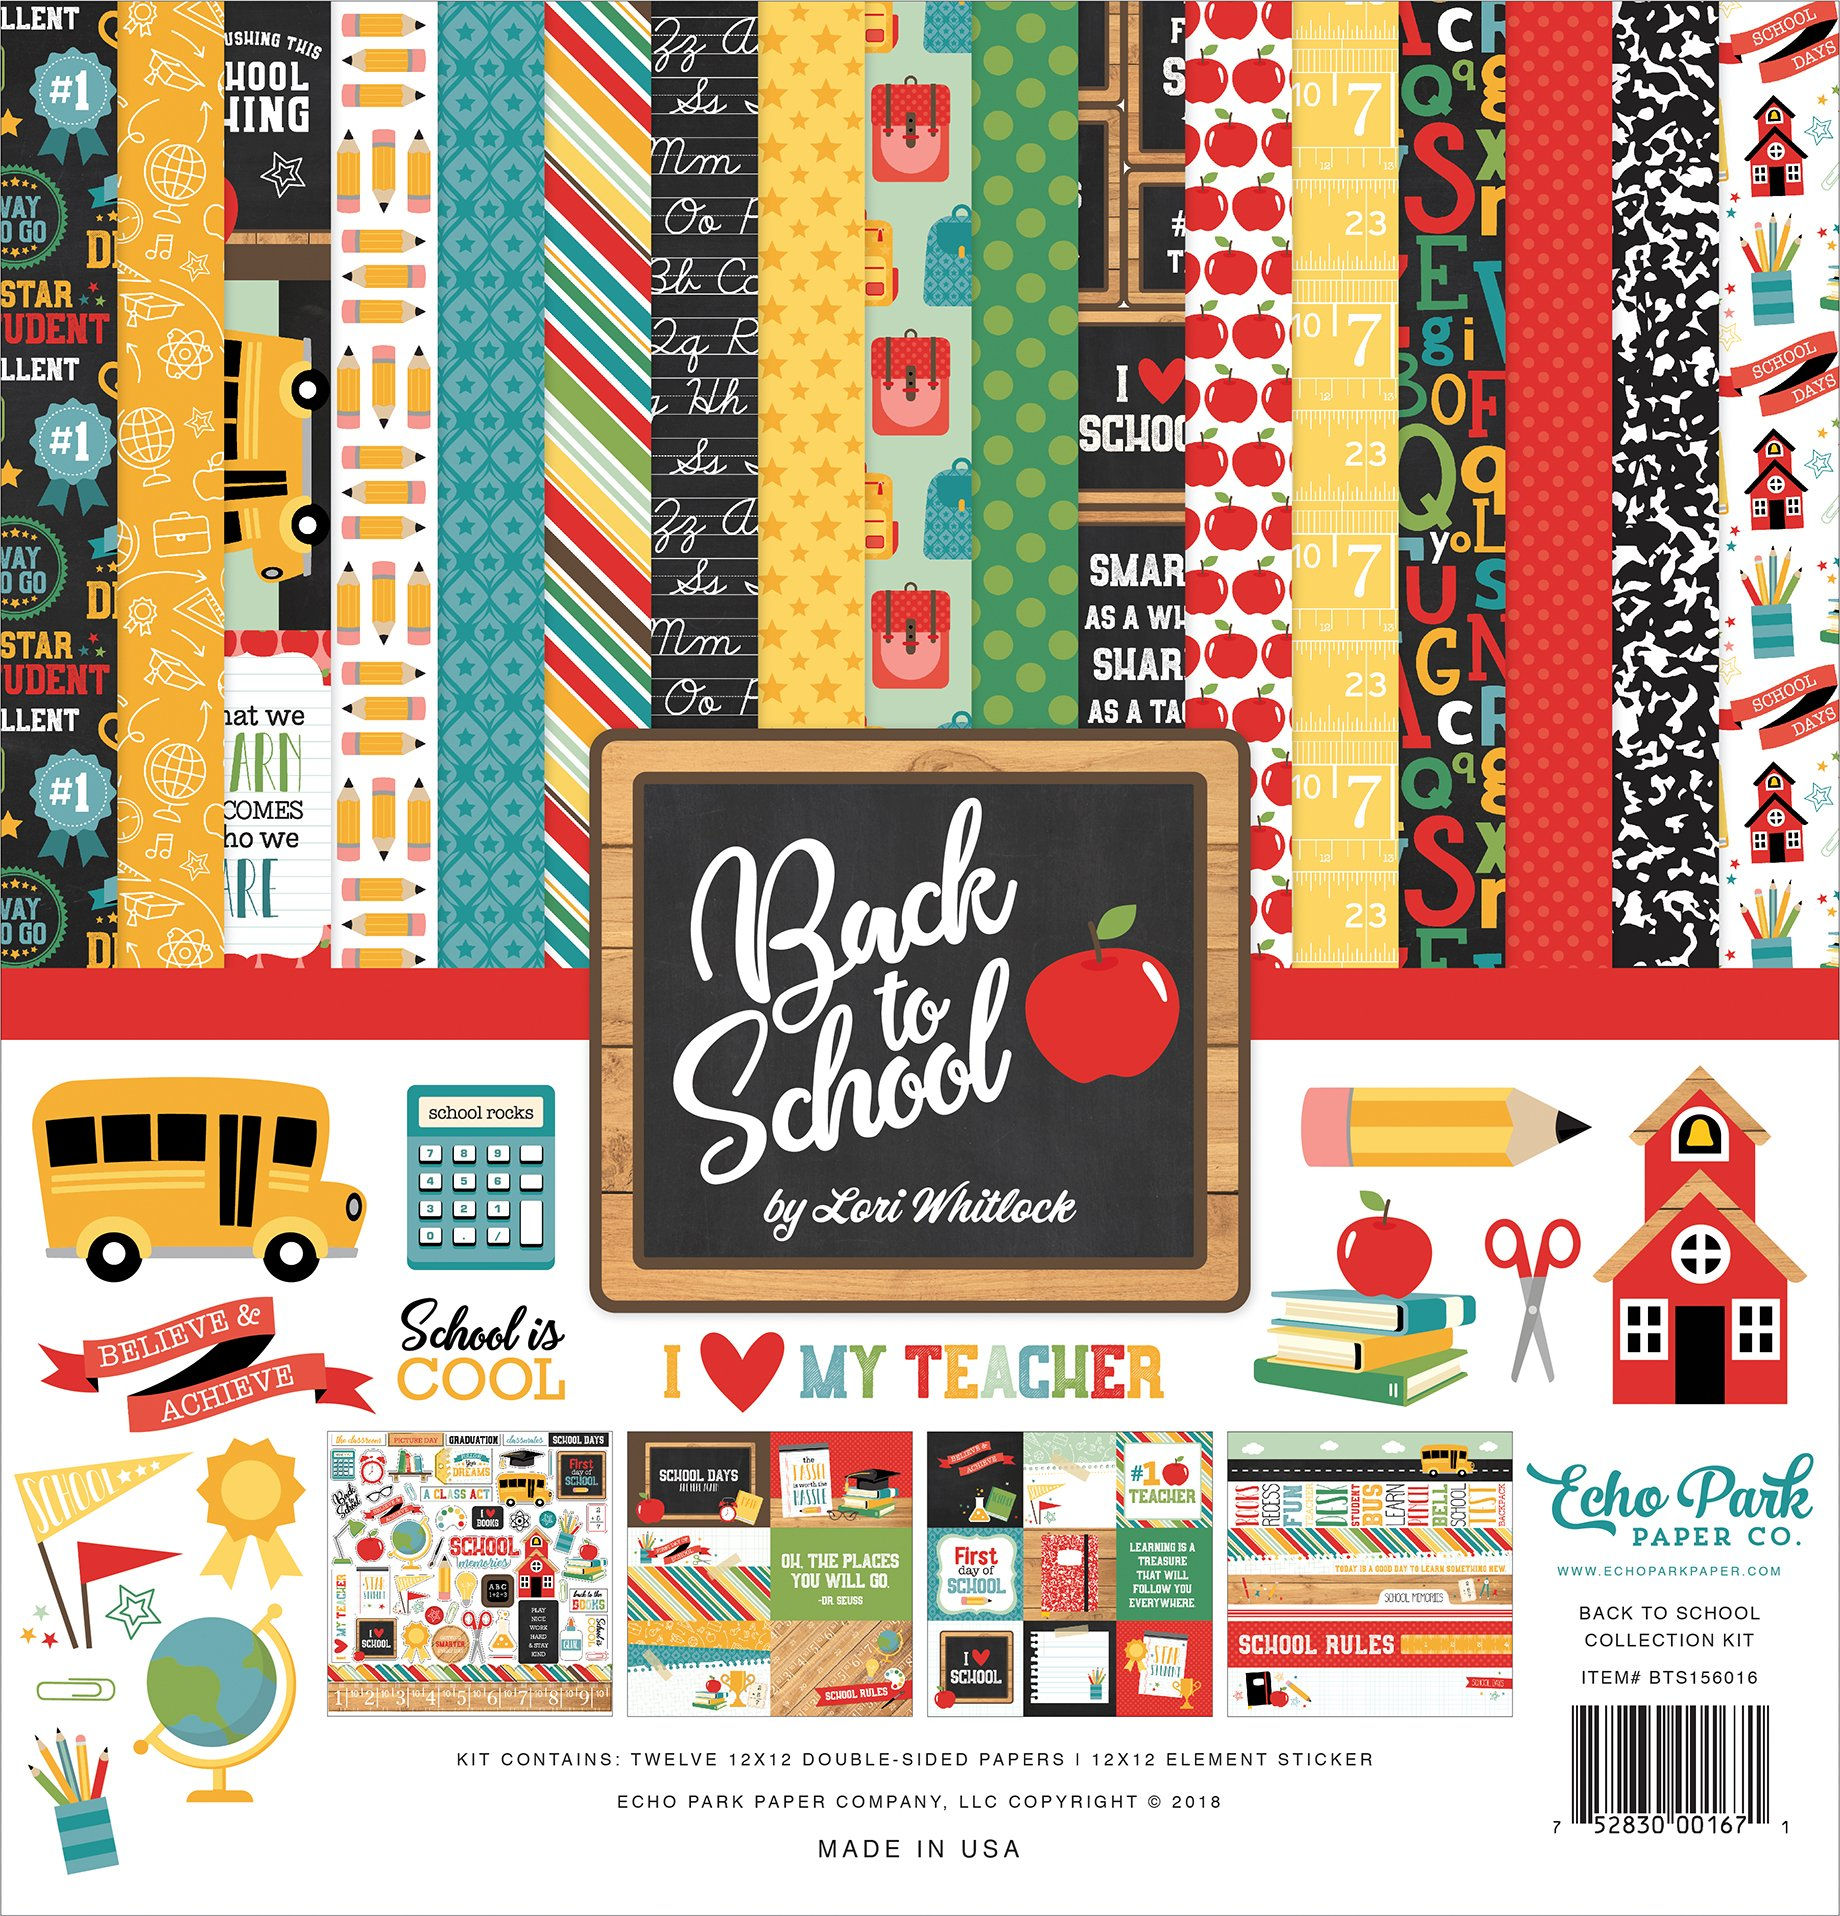 Echo Park Paper Company 1 Back to School Collection Kit Paper, 12-x-12'', Blue/Black/Red/Green/Yellow